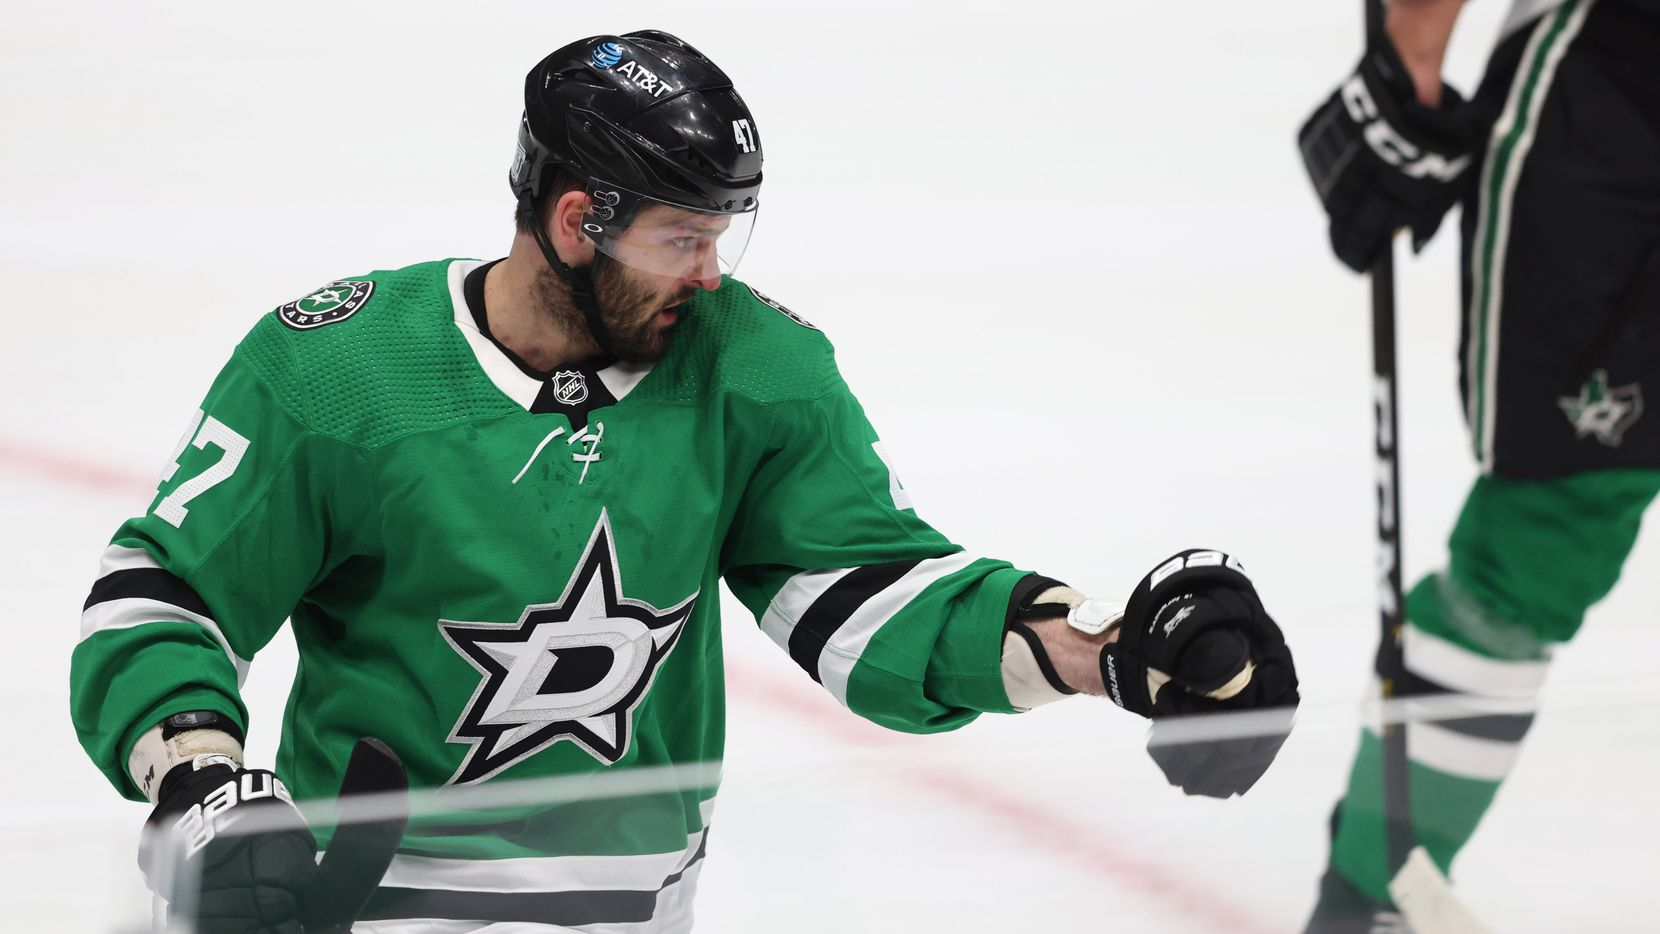 Dallas Stars right wing Alexander Radulov (47) celebrates after scoring his second goal of the game against the Nashville Predators during the second period of play in the Stars home opener at American Airlines Center on Friday, January 22, 2021 in Dallas.